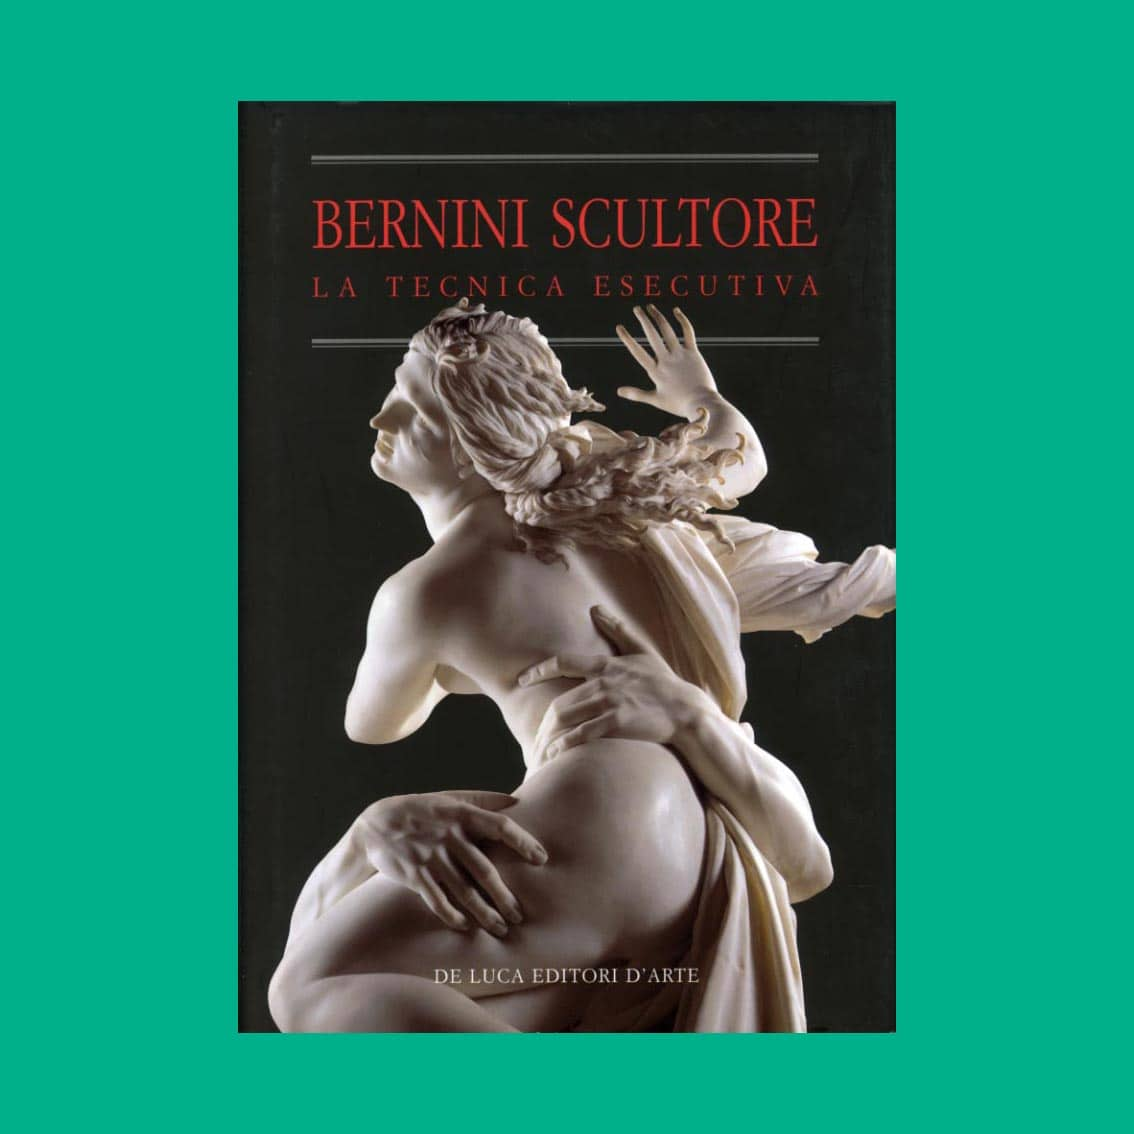 https://cbccoop.it/app/uploads/2017/06/Bernini-scultore.jpg